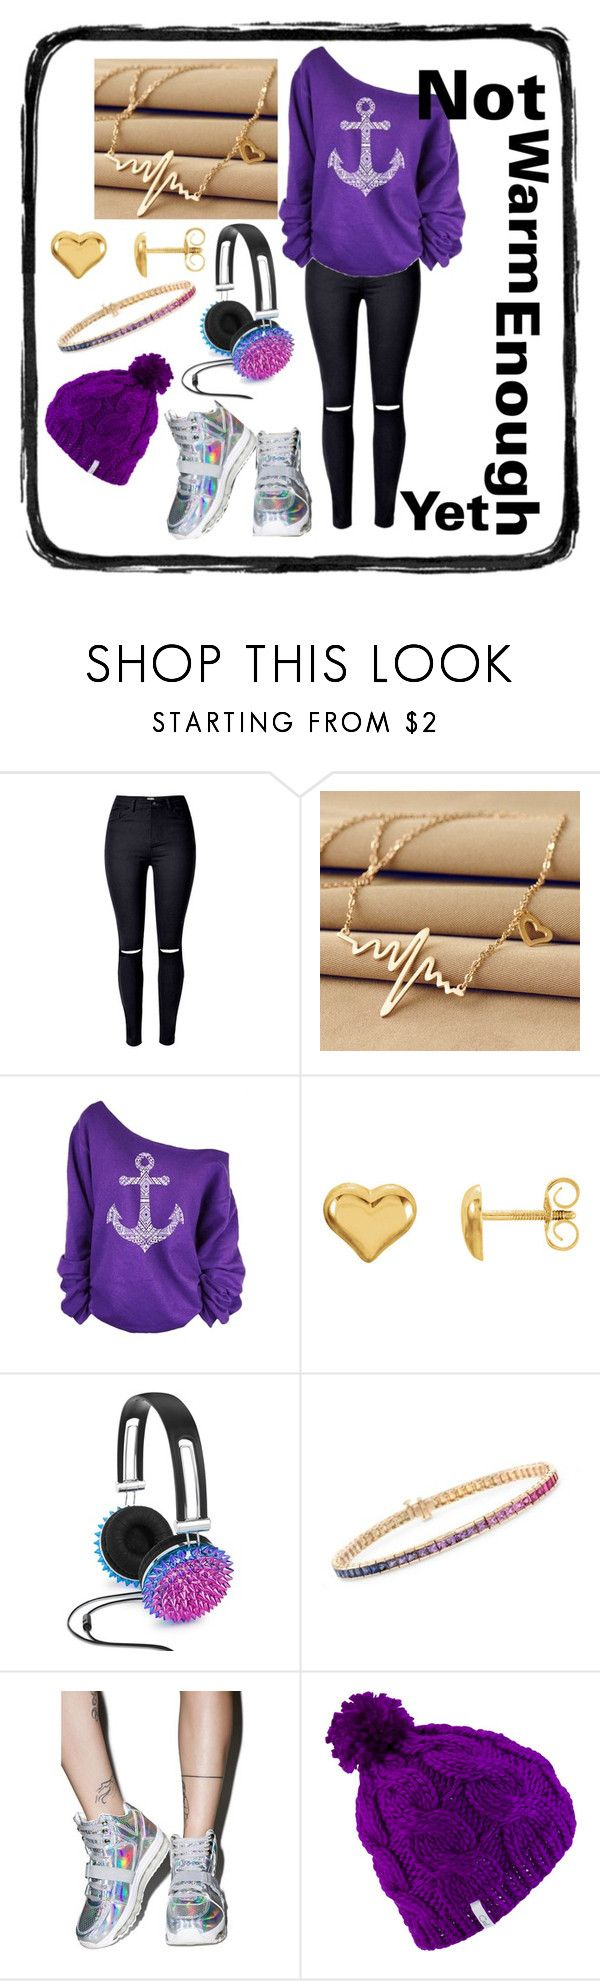 """Not Warm Enough Yet - Cold Spring"" by pandacurry-official ❤ liked on Polyvore featuring WithChic, Celebrate Shop, Ross-Simons, Y.R.U. and Coal"